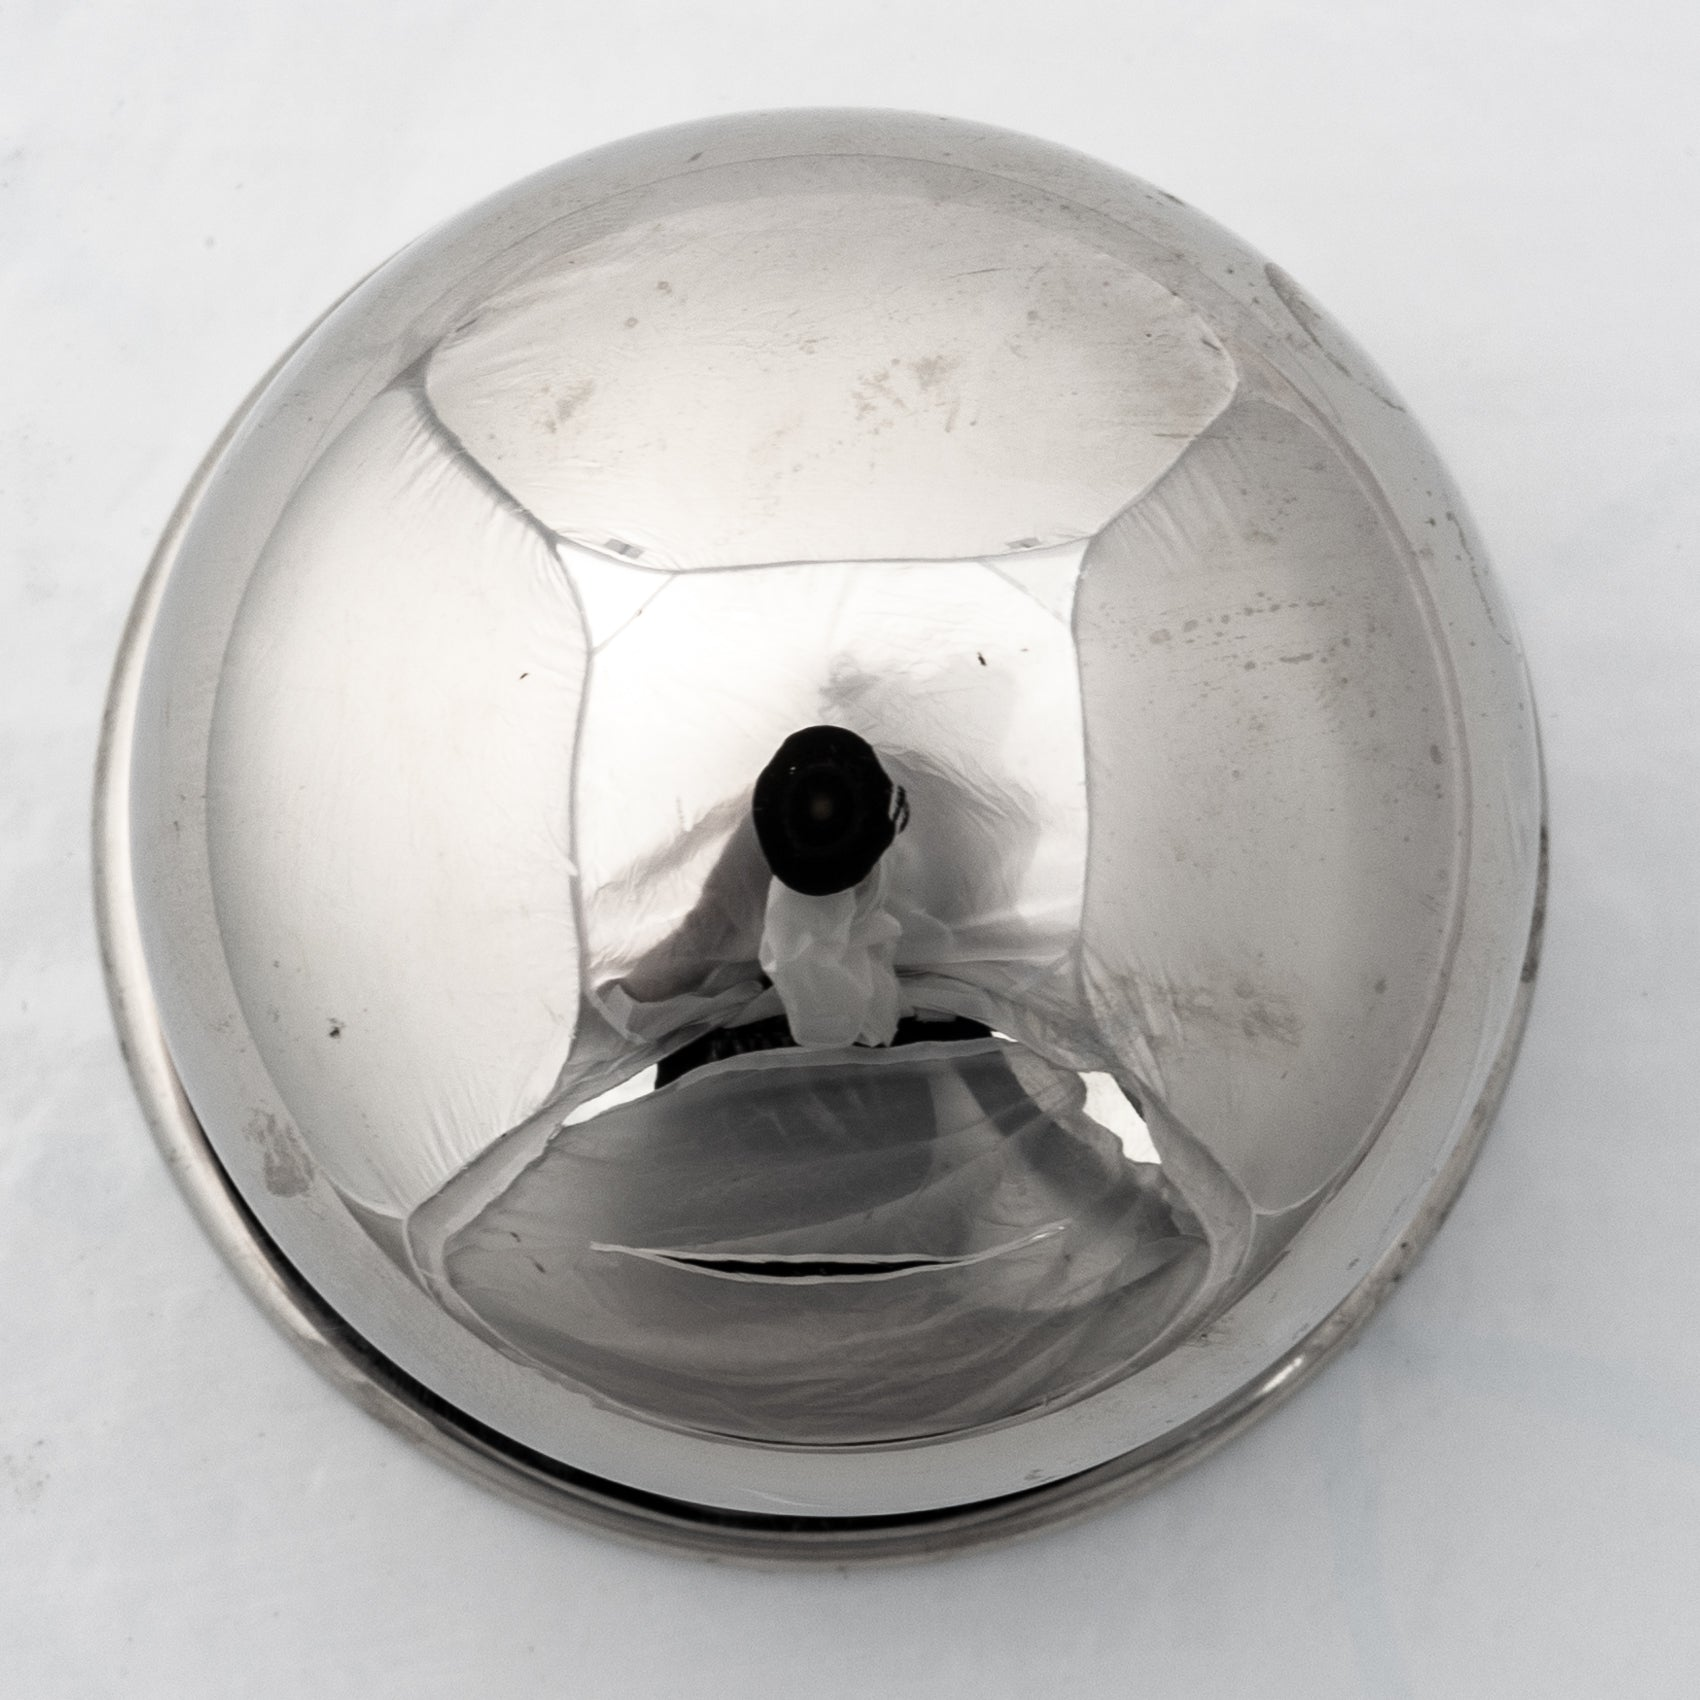 Reclaimed Polished Chrome Door Knob 3 Available | The Architectural Forum